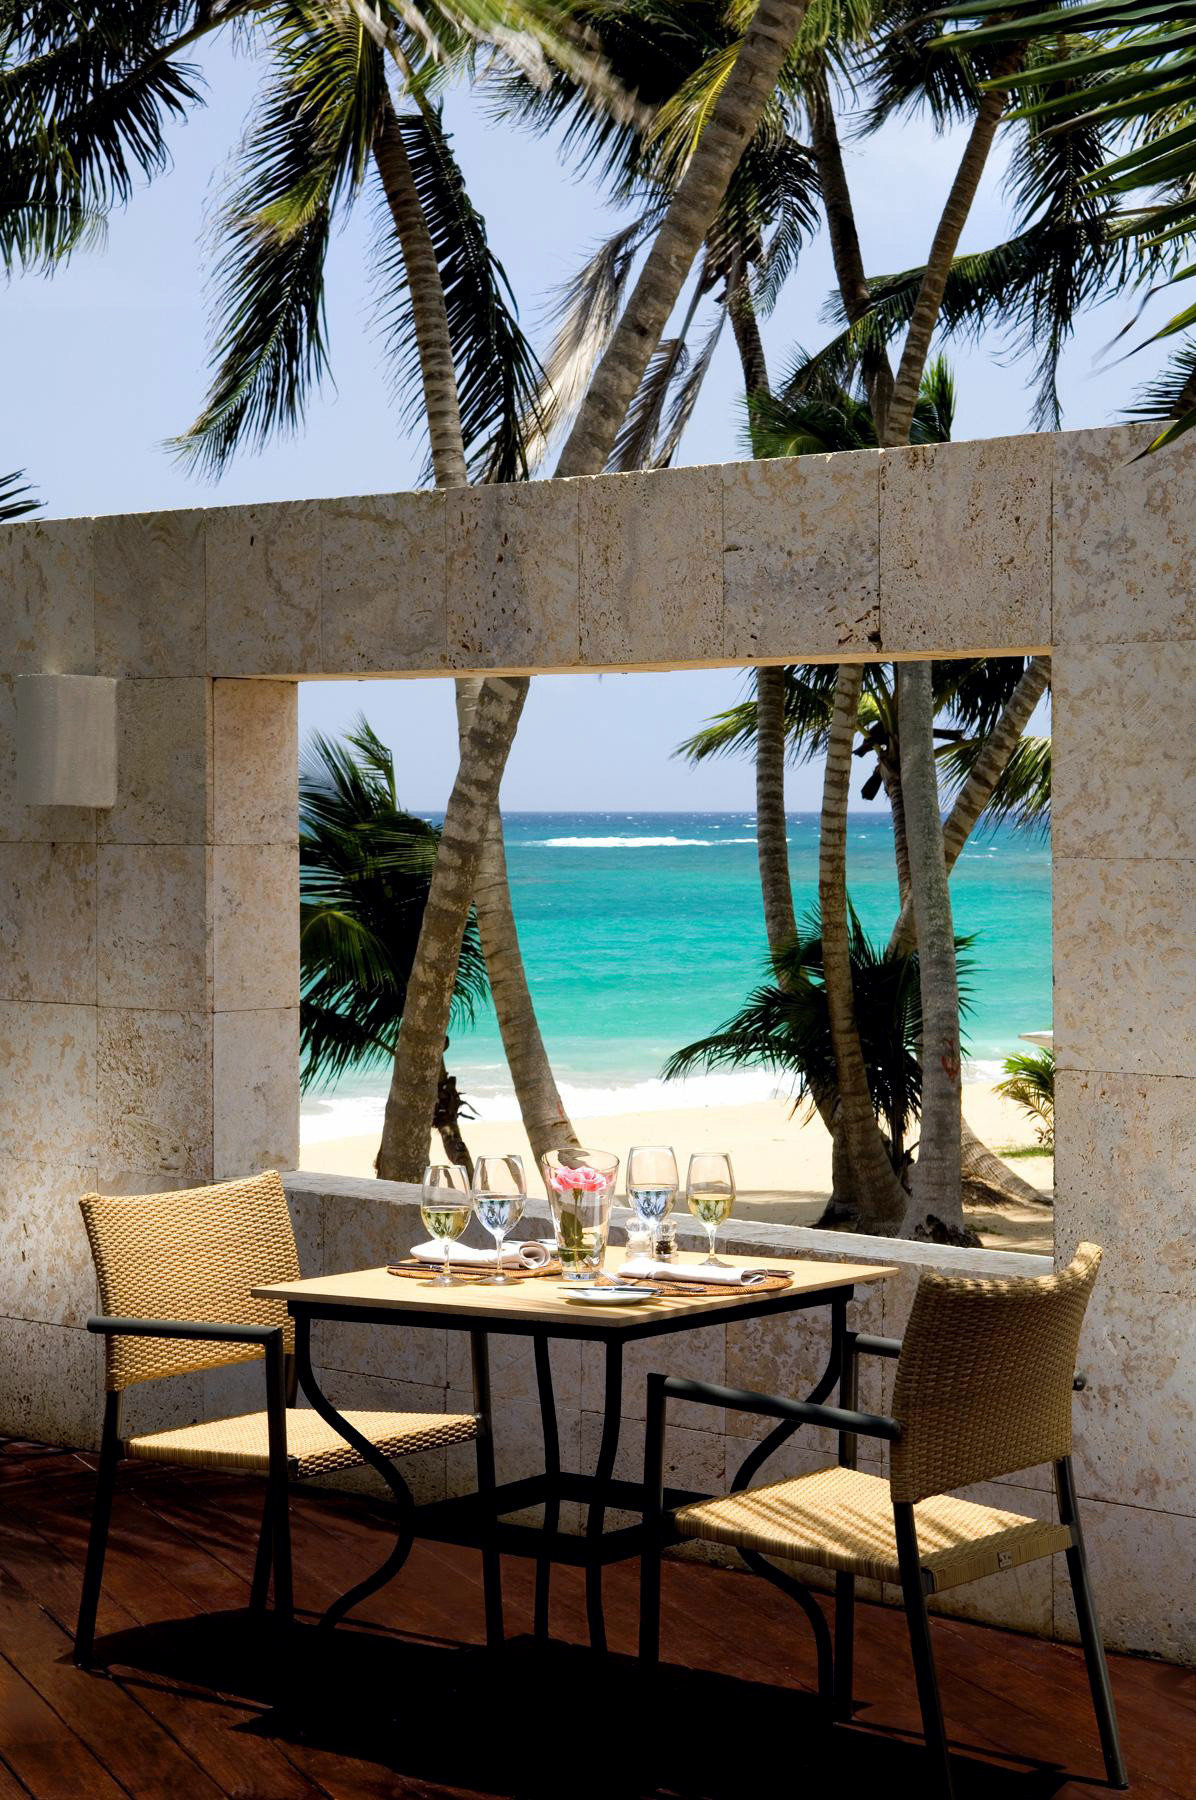 Adult-only All-inclusive Beach Beachfront Boutique Dining Eat Honeymoon Romance tree plant property palm home Villa Resort caribbean Pool restaurant